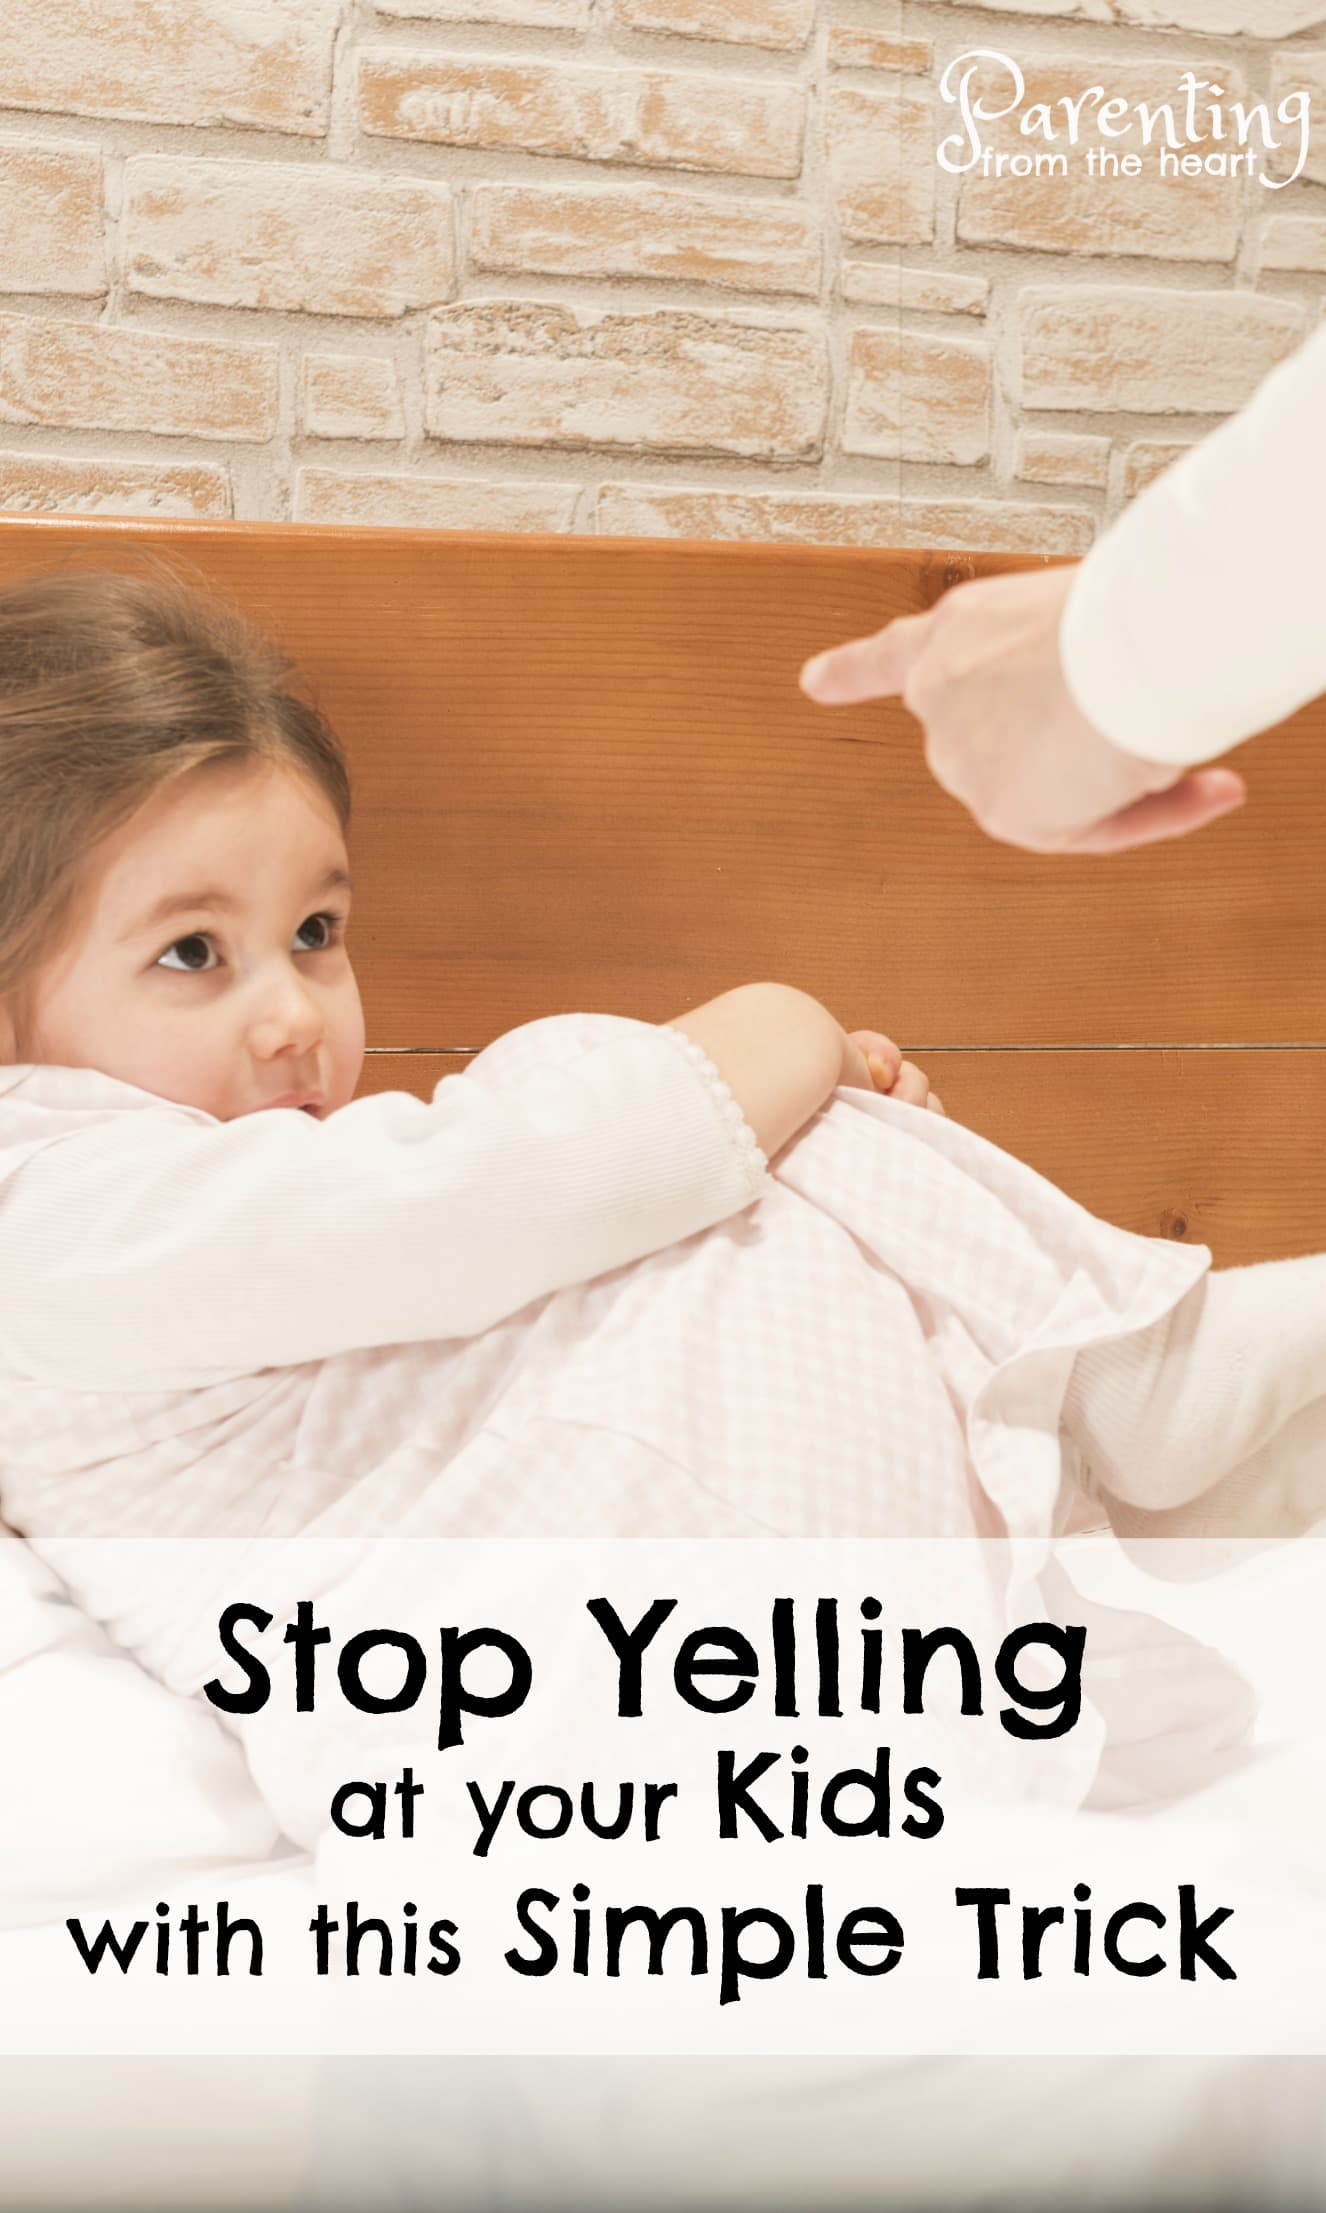 Stop yelling at your kids with this SIMPLE and effective strategy. Rooted in positive parenting, this tip stopped me from yelling at my kids and has helped calm our household greatly. #positiveparenting #parentingtoddlers #parenting #stopyelling #parentingfromtheheart #positivediscipline #motherhood #mindfulness